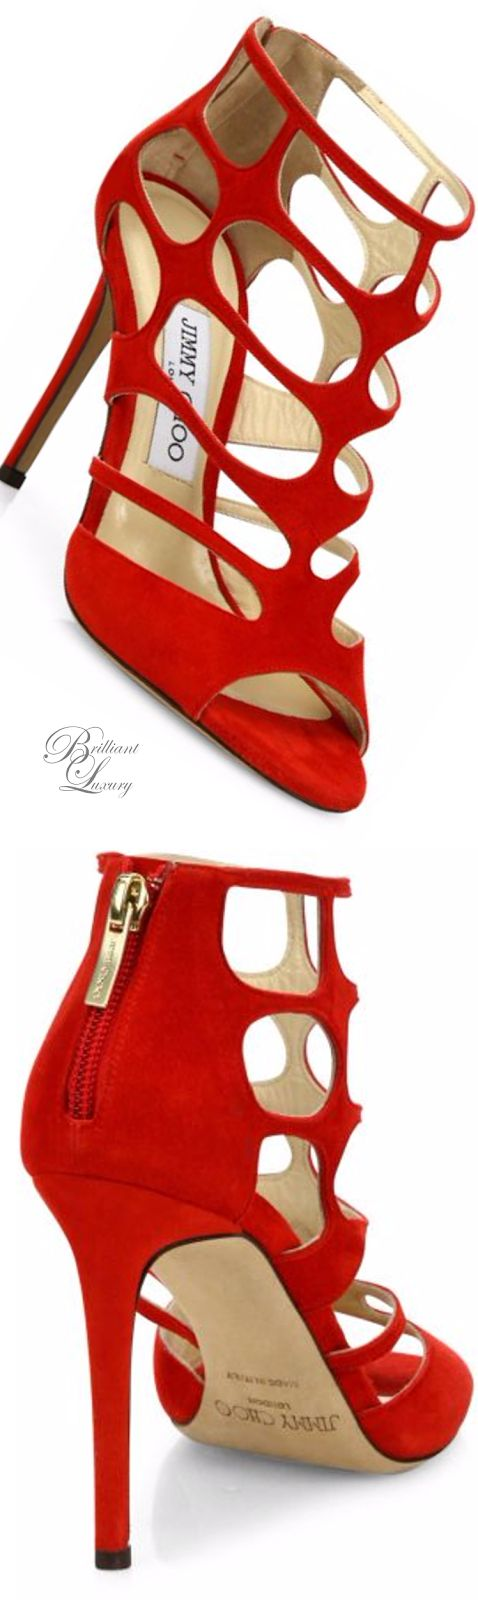 17 best ideas about red heels on pinterest